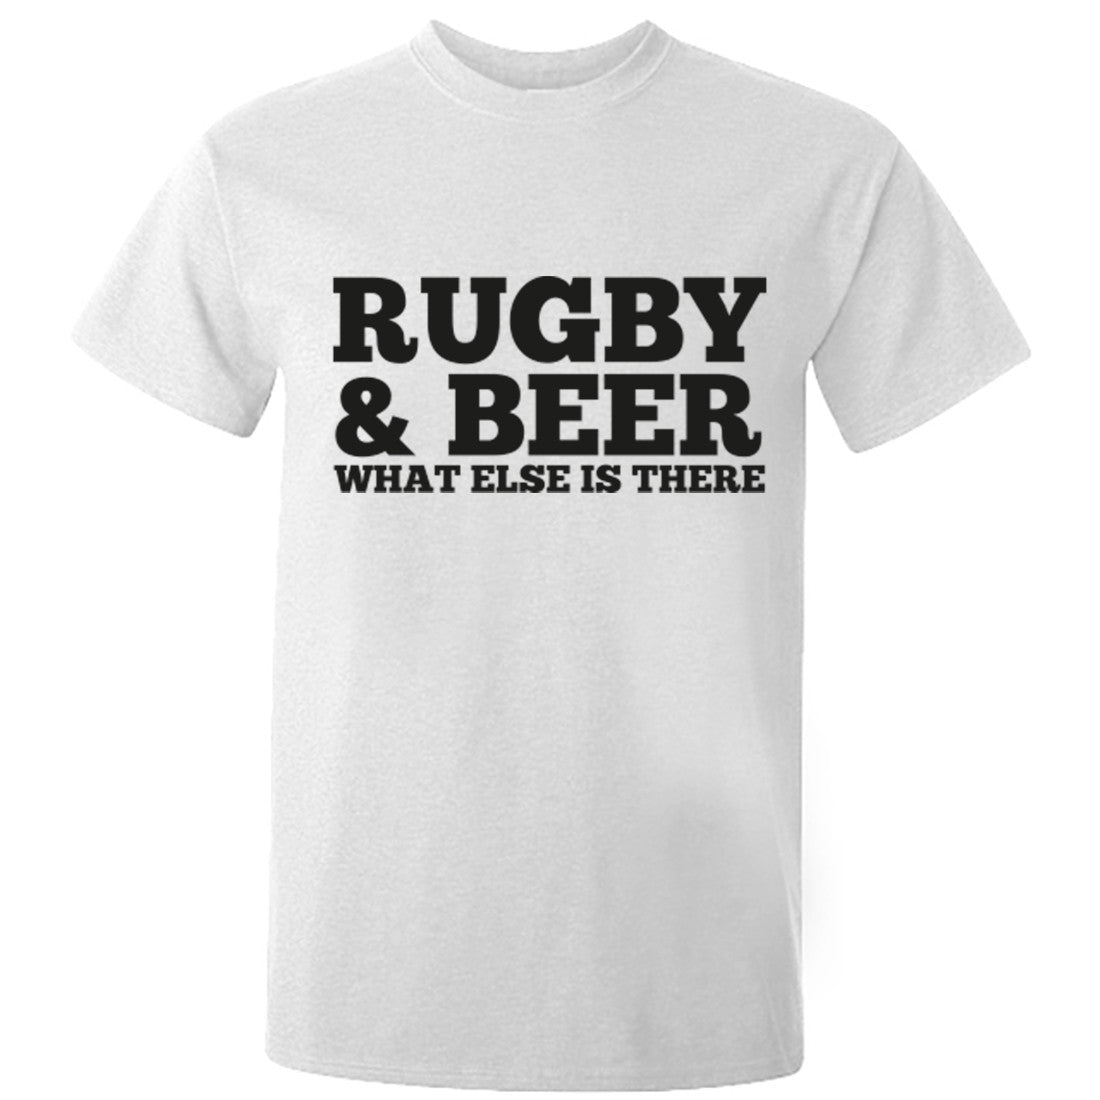 Rugby And Beer What Else Is There Unisex Fit T-Shirt K0672 - Illustrated Identity Ltd.